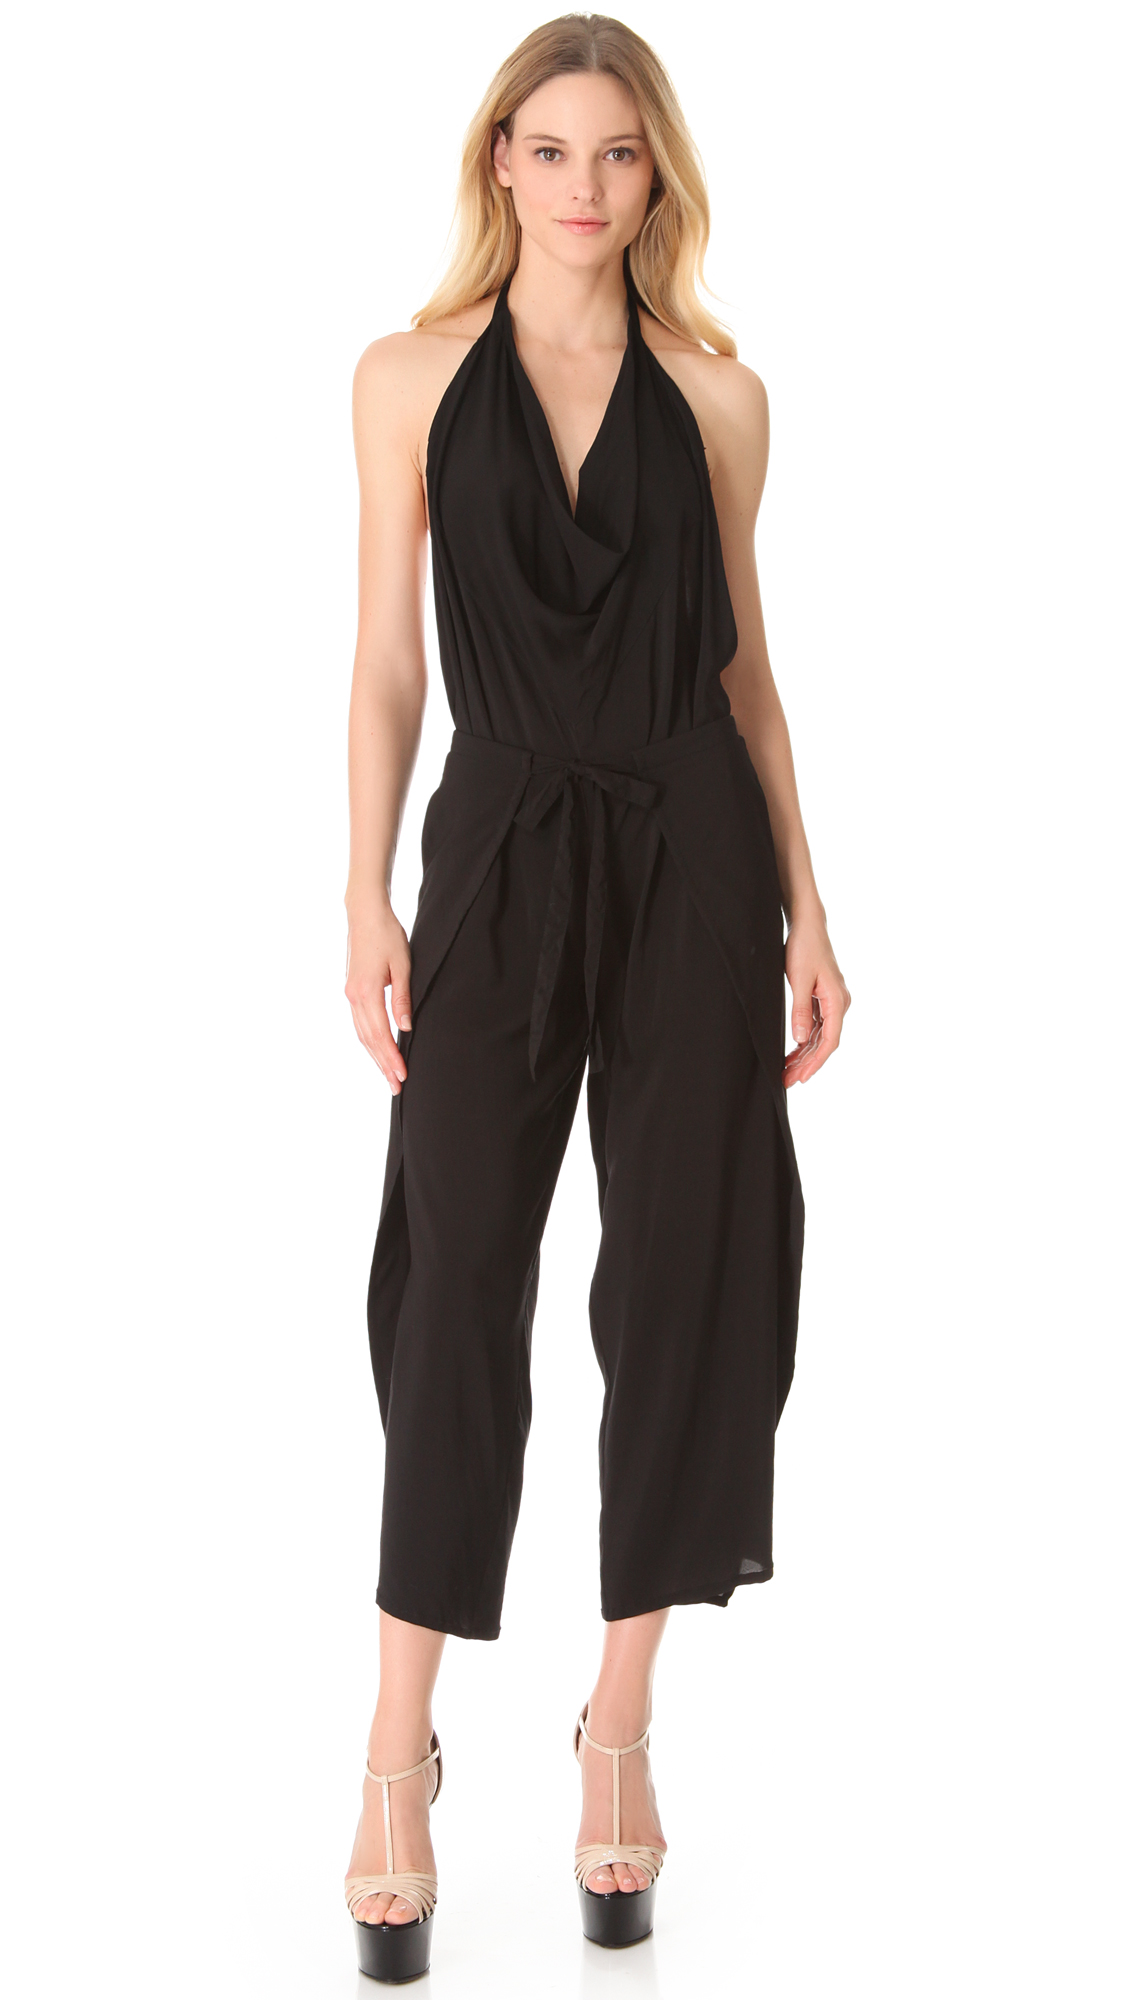 Donna karan new york halter wrap jumpsuit in black lyst for Donna karen new york